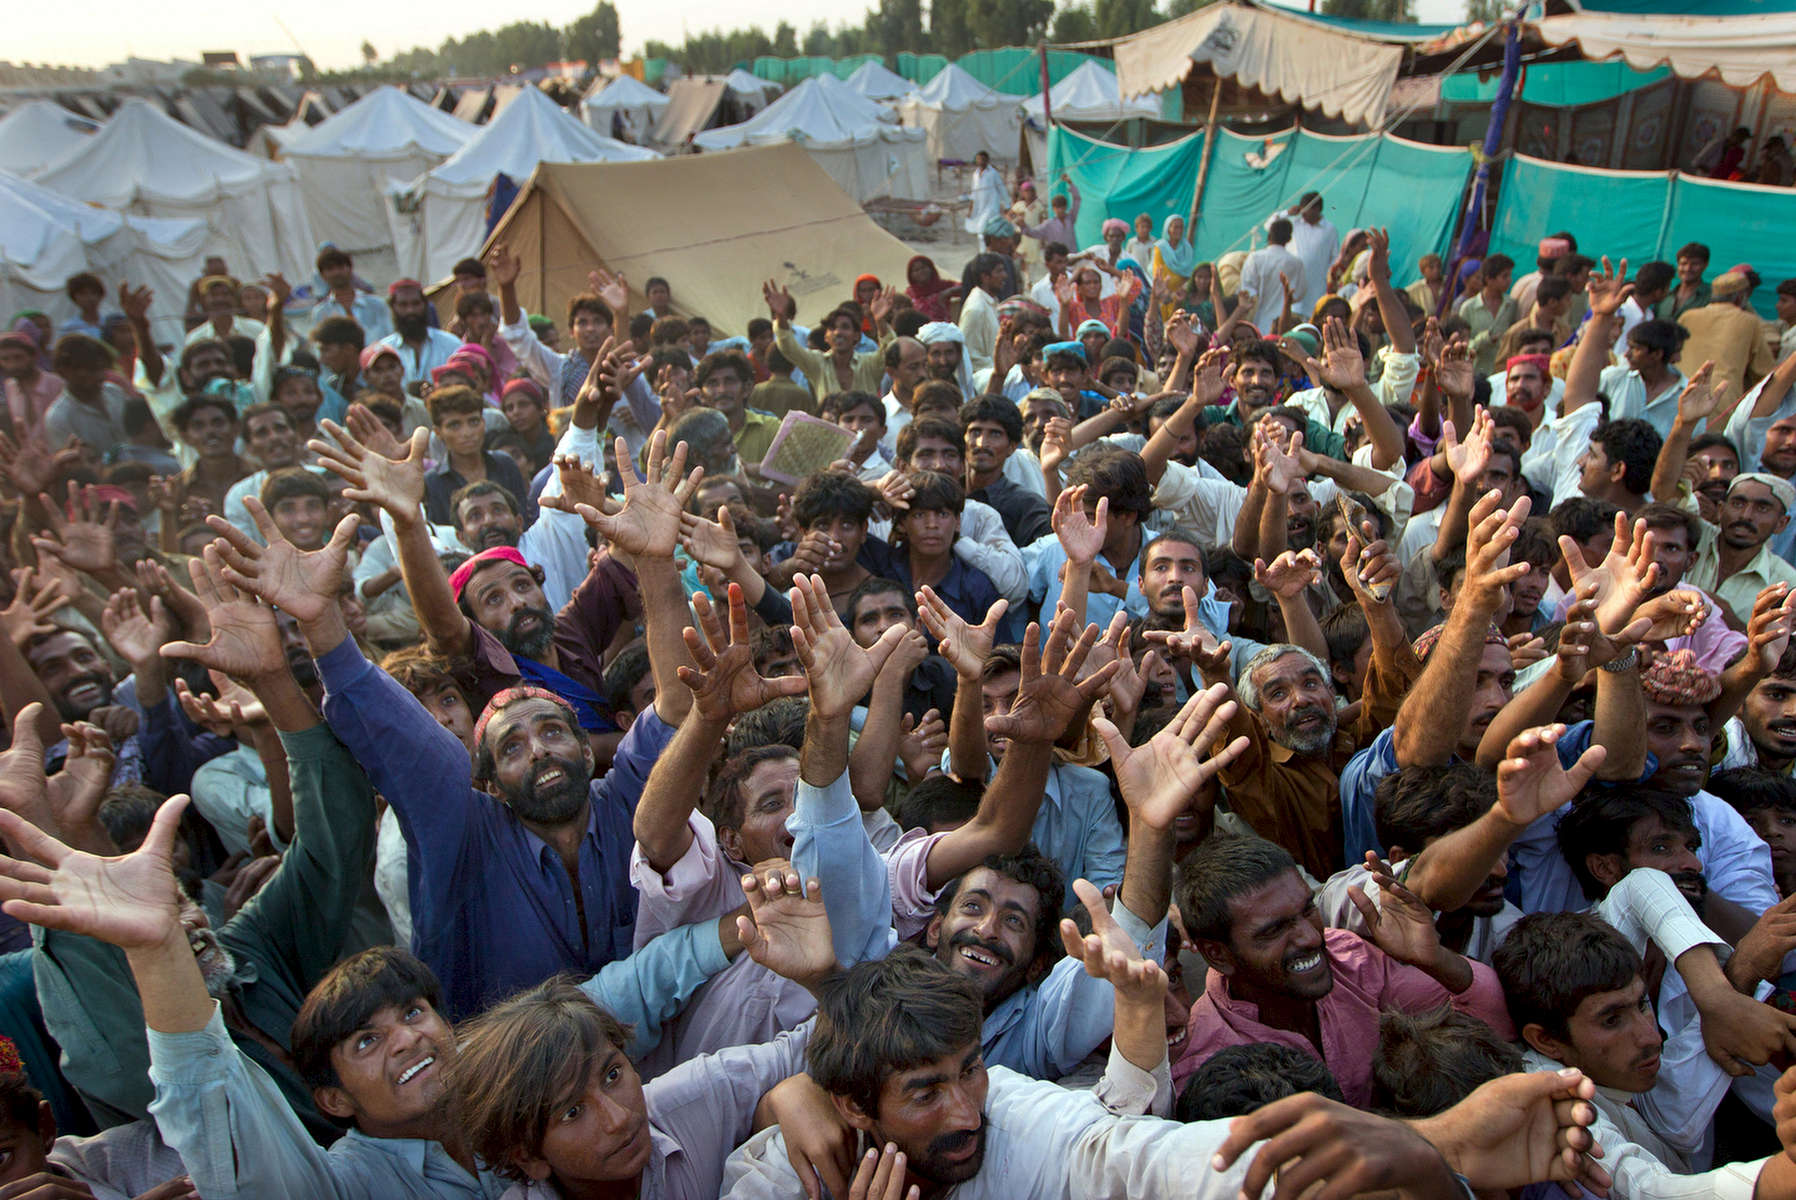 SUKKUR, PAKISTAN-AUG 19: Desperate flood victims scramble for some aid given out by the Pakistan military at a tented camp August 19, 2010 in Sukkur , Pakistan. The country\'s agricultural heartland has been devastated as rice, corn and wheat crops have been destroyed by the floods, government officials claim as many as 20 million people have been effected by the flooding with 15 million seriously effected. Pakistan is suffering from the worst flooding in 80 years as the army and aid organizations continue to struggle three weeks on with the wide spread scale of the disaster which has killed over 1,600 people and injured 2,000. The relief effort is being hampered by logistical problems, including the ability to reach many of the victims.  The U.N has described the disaster as unprecedented with over a third of the country under water. It has now received more than half of the $460 million appeal it issued last week to pay for humanitarian operations over the next three months. (Photo by Paula Bronstein/ Getty Images)